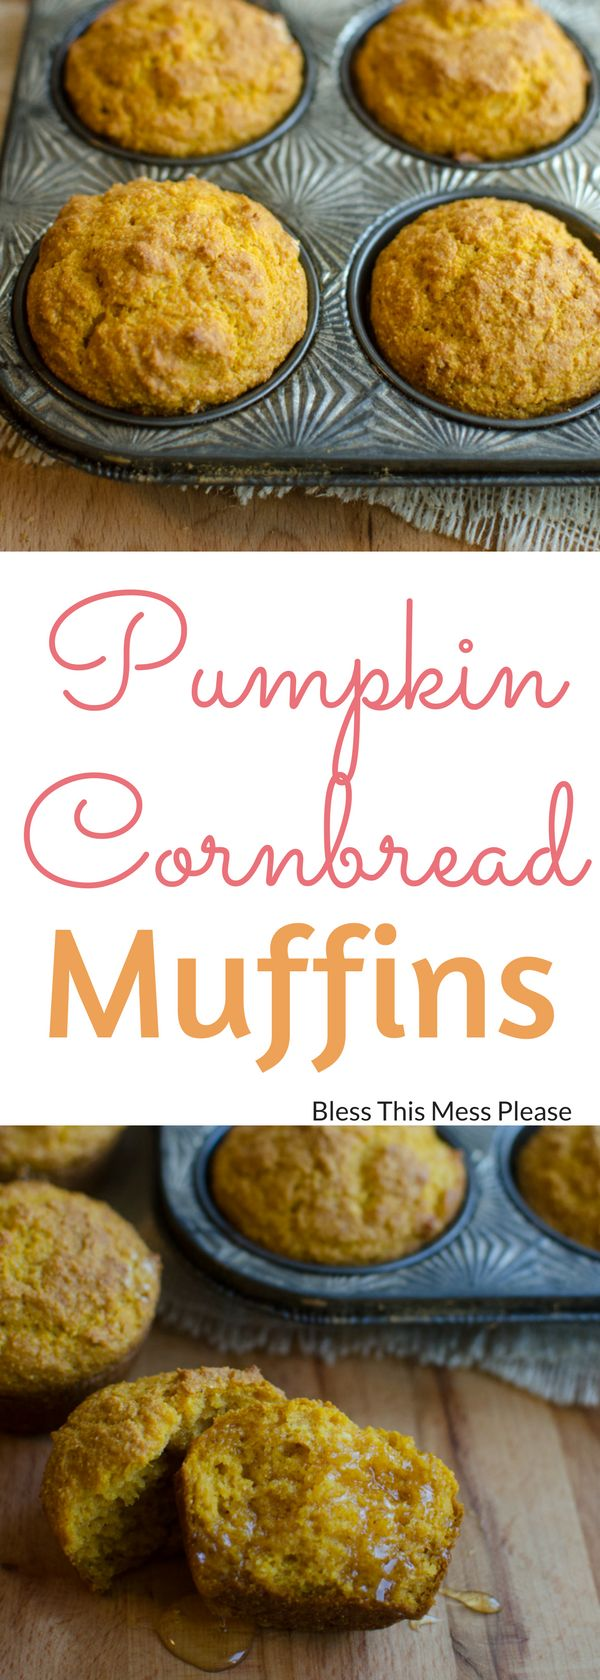 Pumpkin Cornbread Muffins ~ Beautiful simple healthy pumpkin cornbread muffins are the perfect side to all your favorite soups and chilis.